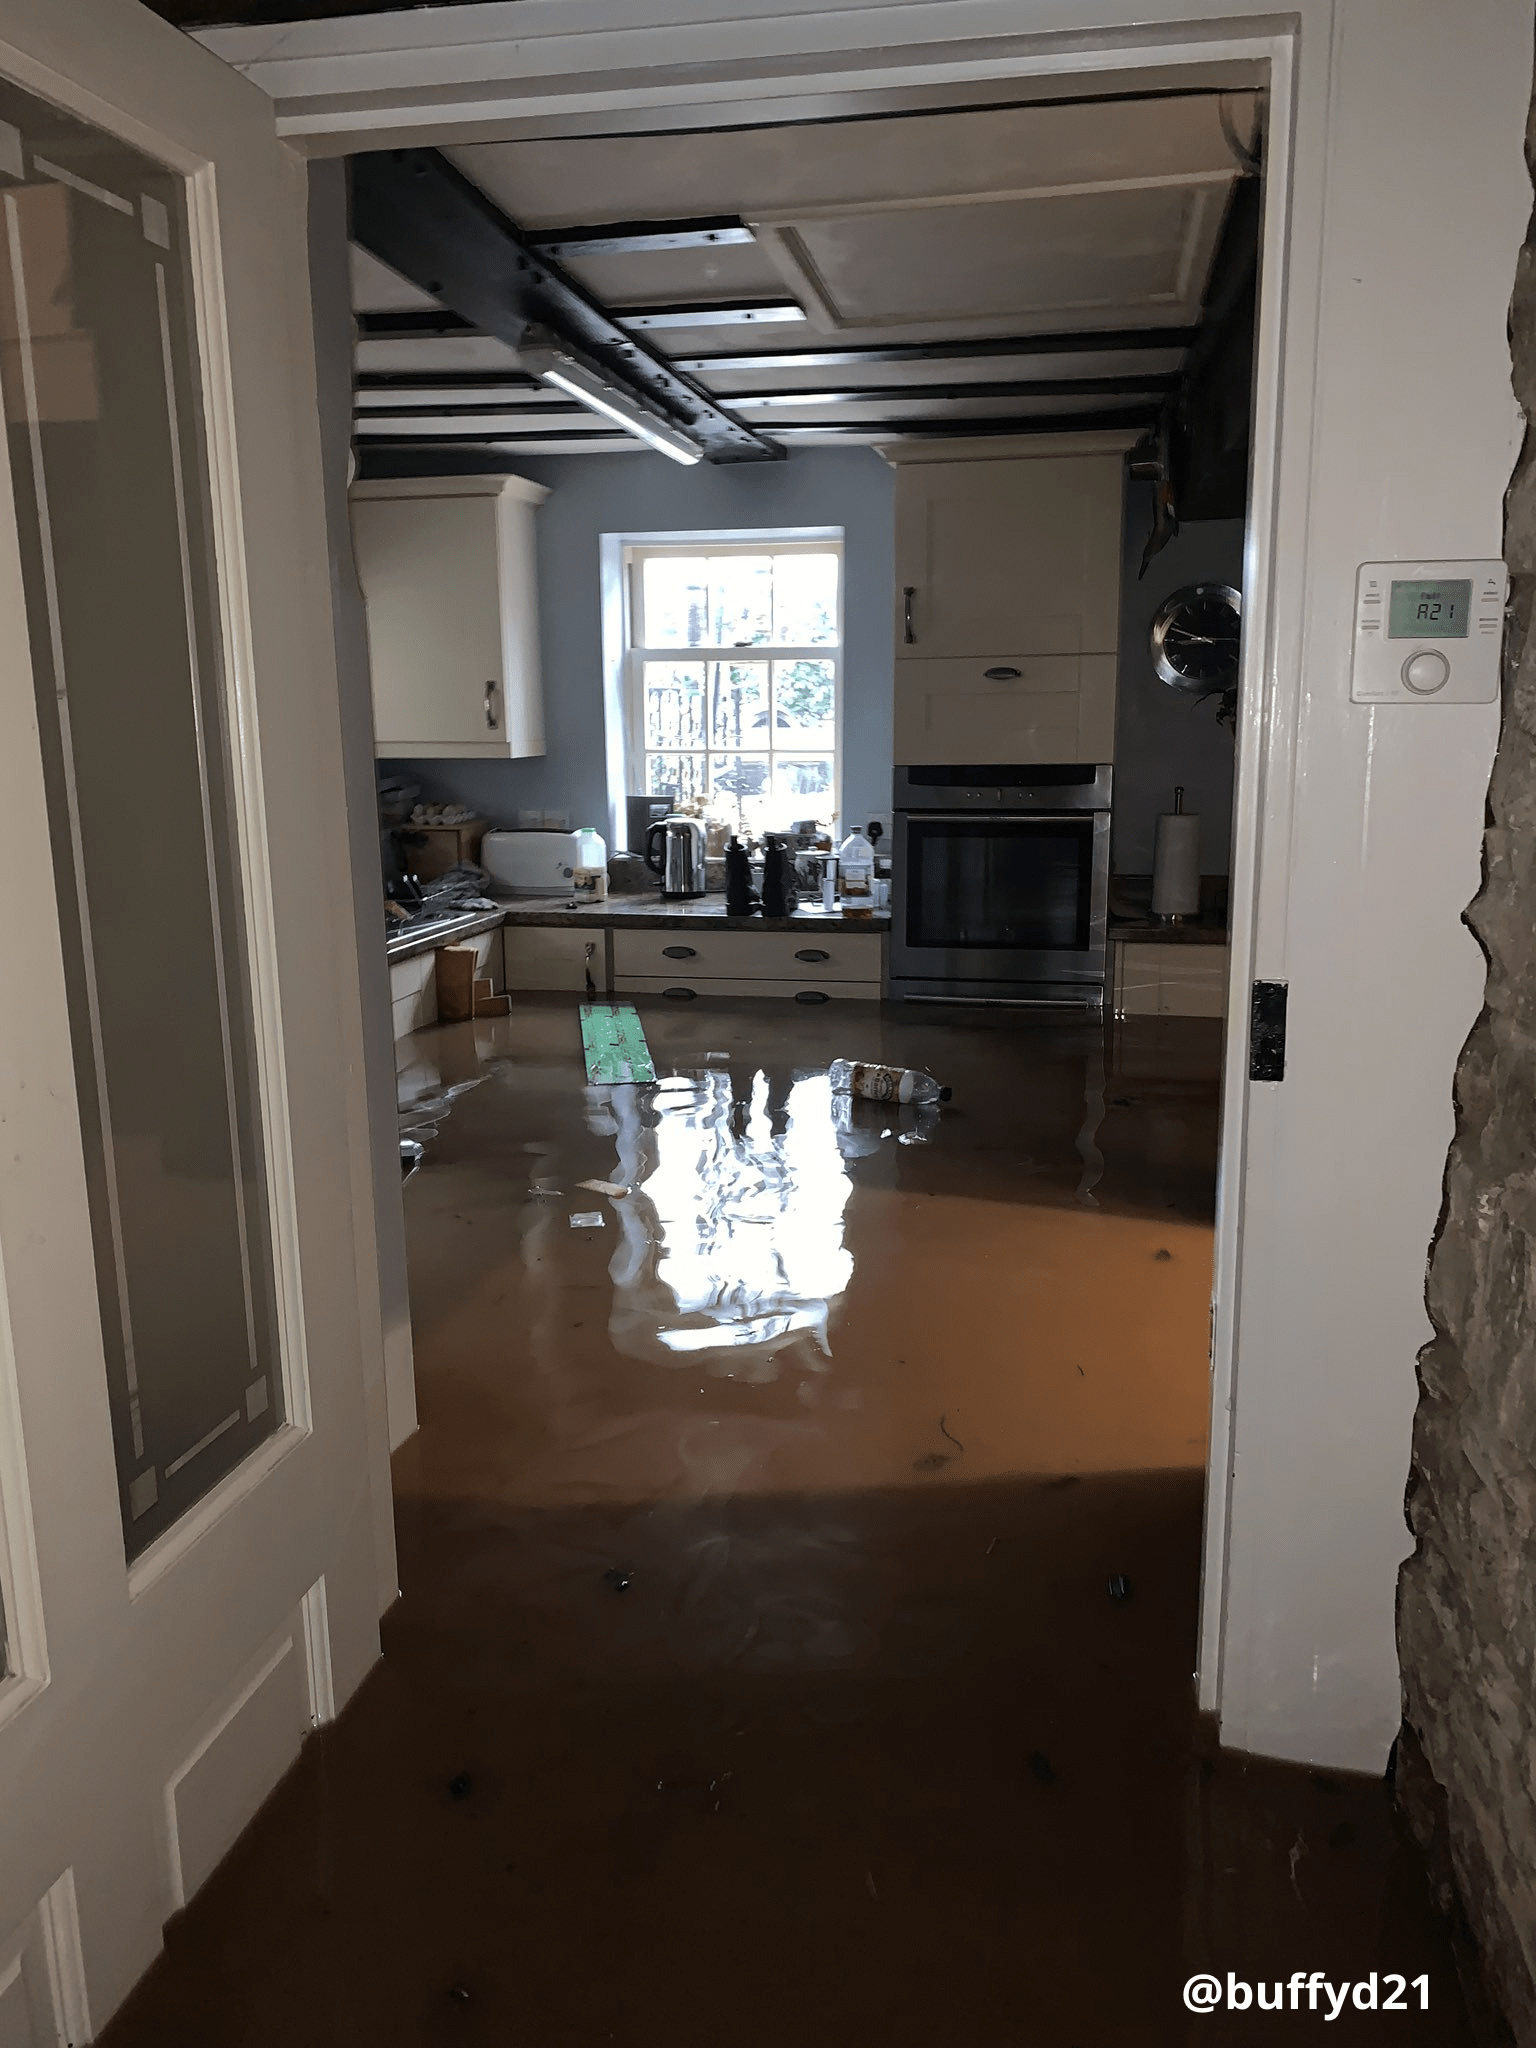 Storm Dennis – council chief executive's update on the impact on Shropshire